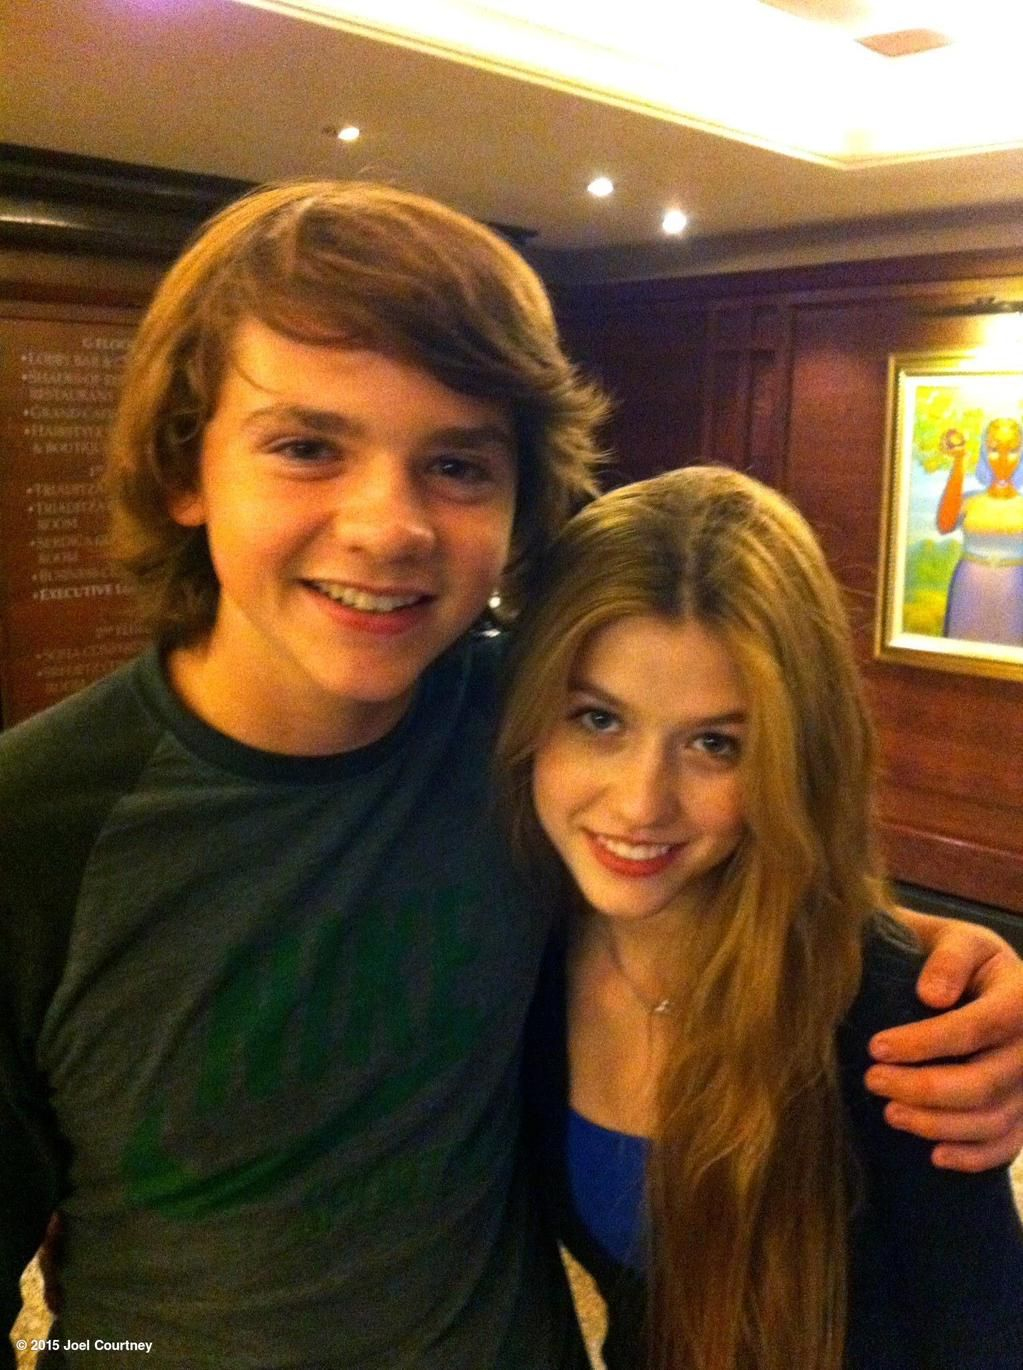 General picture of Joel Courtney - Photo 117 of 363 | Joel